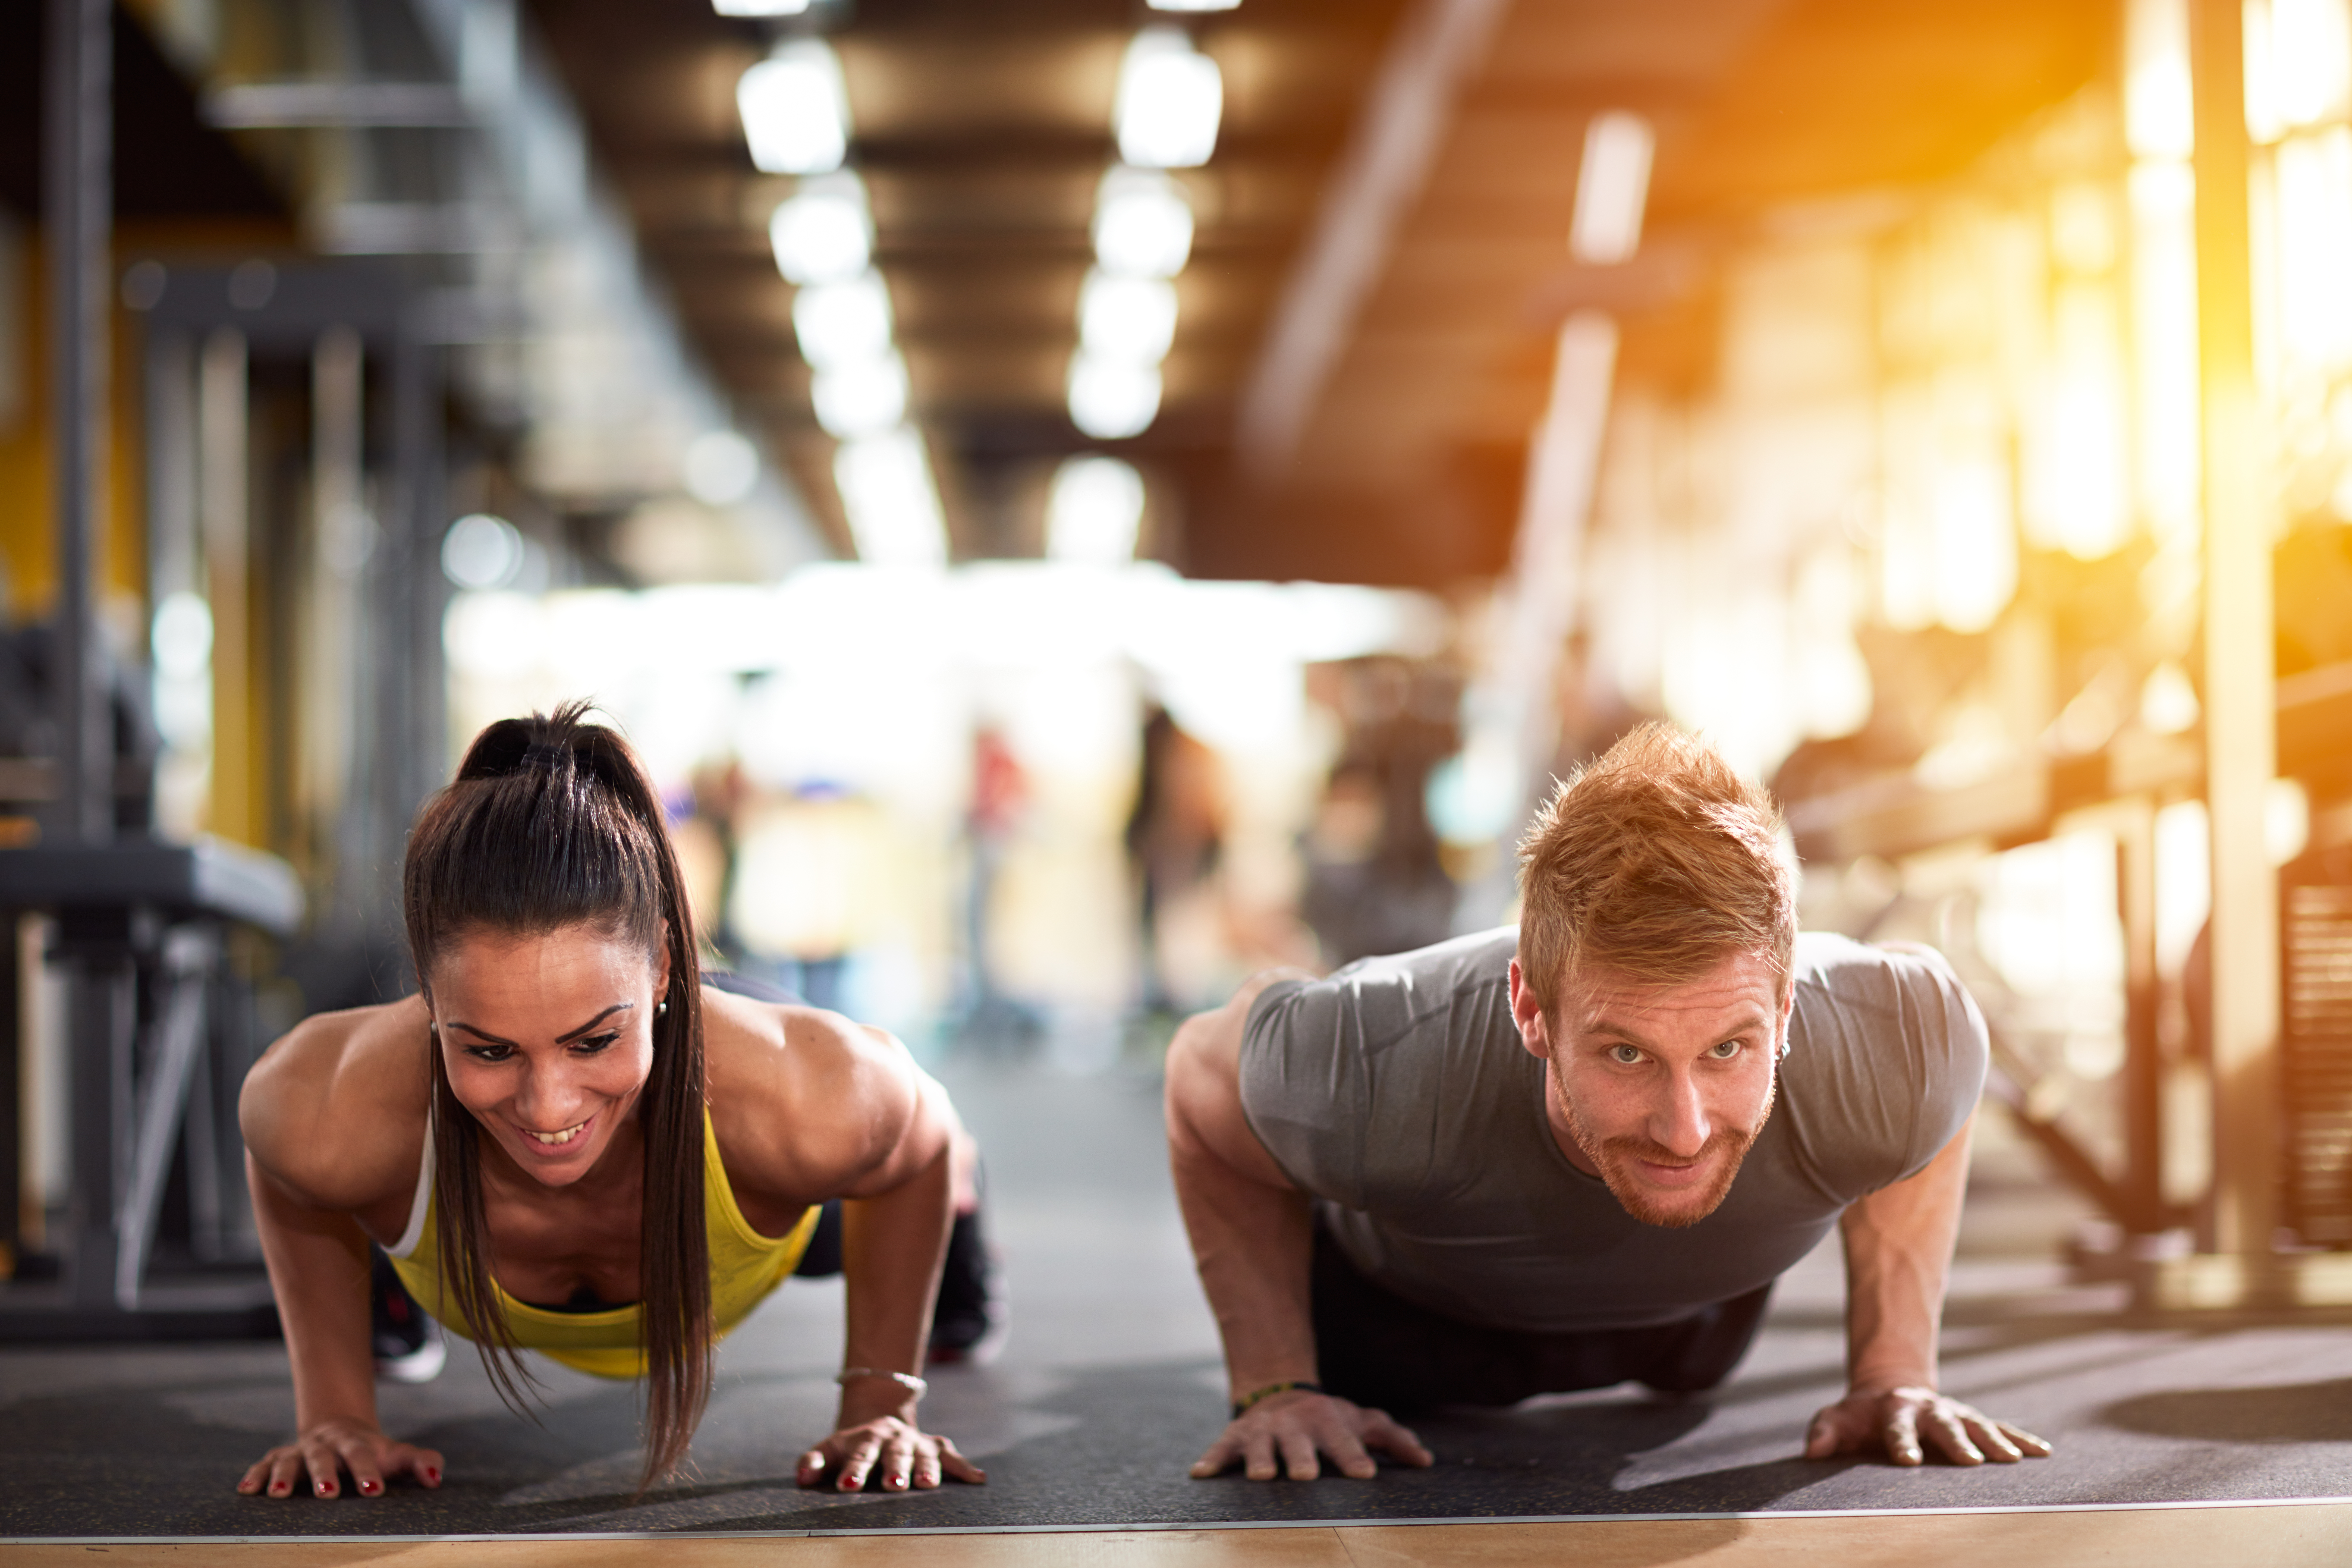 Couple doing pushups at training in gym